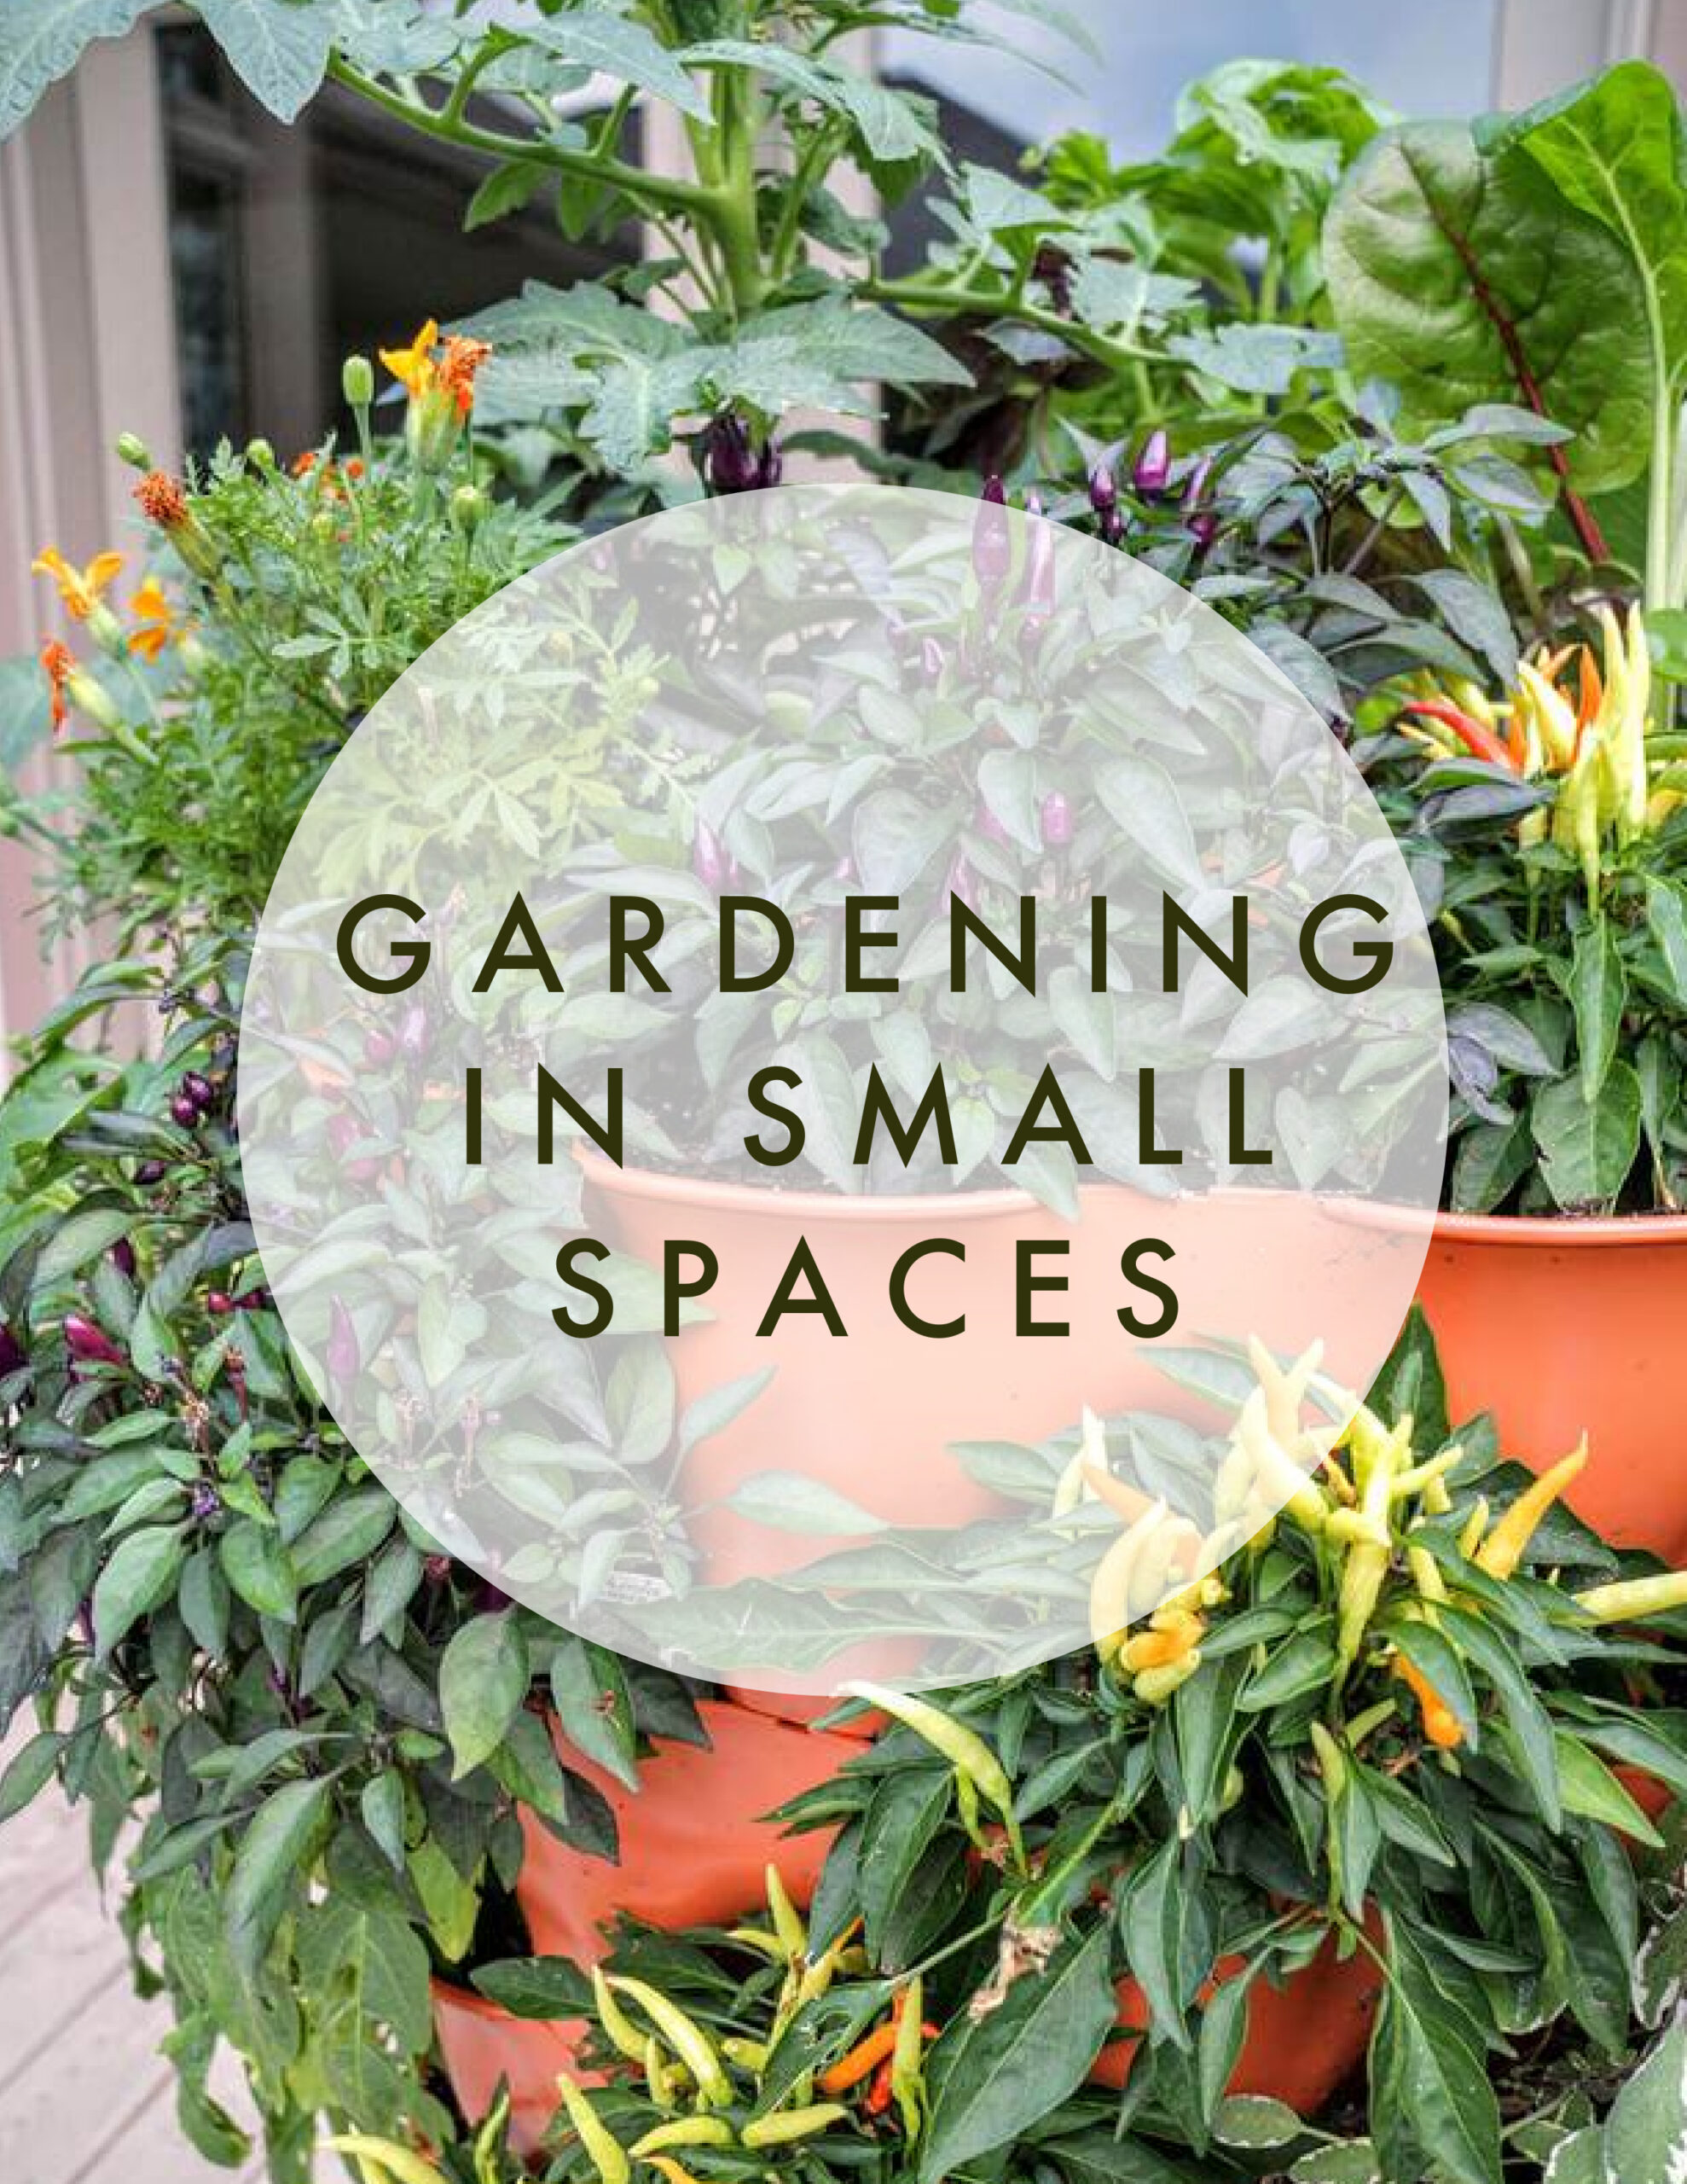 Tops tips for gardening in small spaces